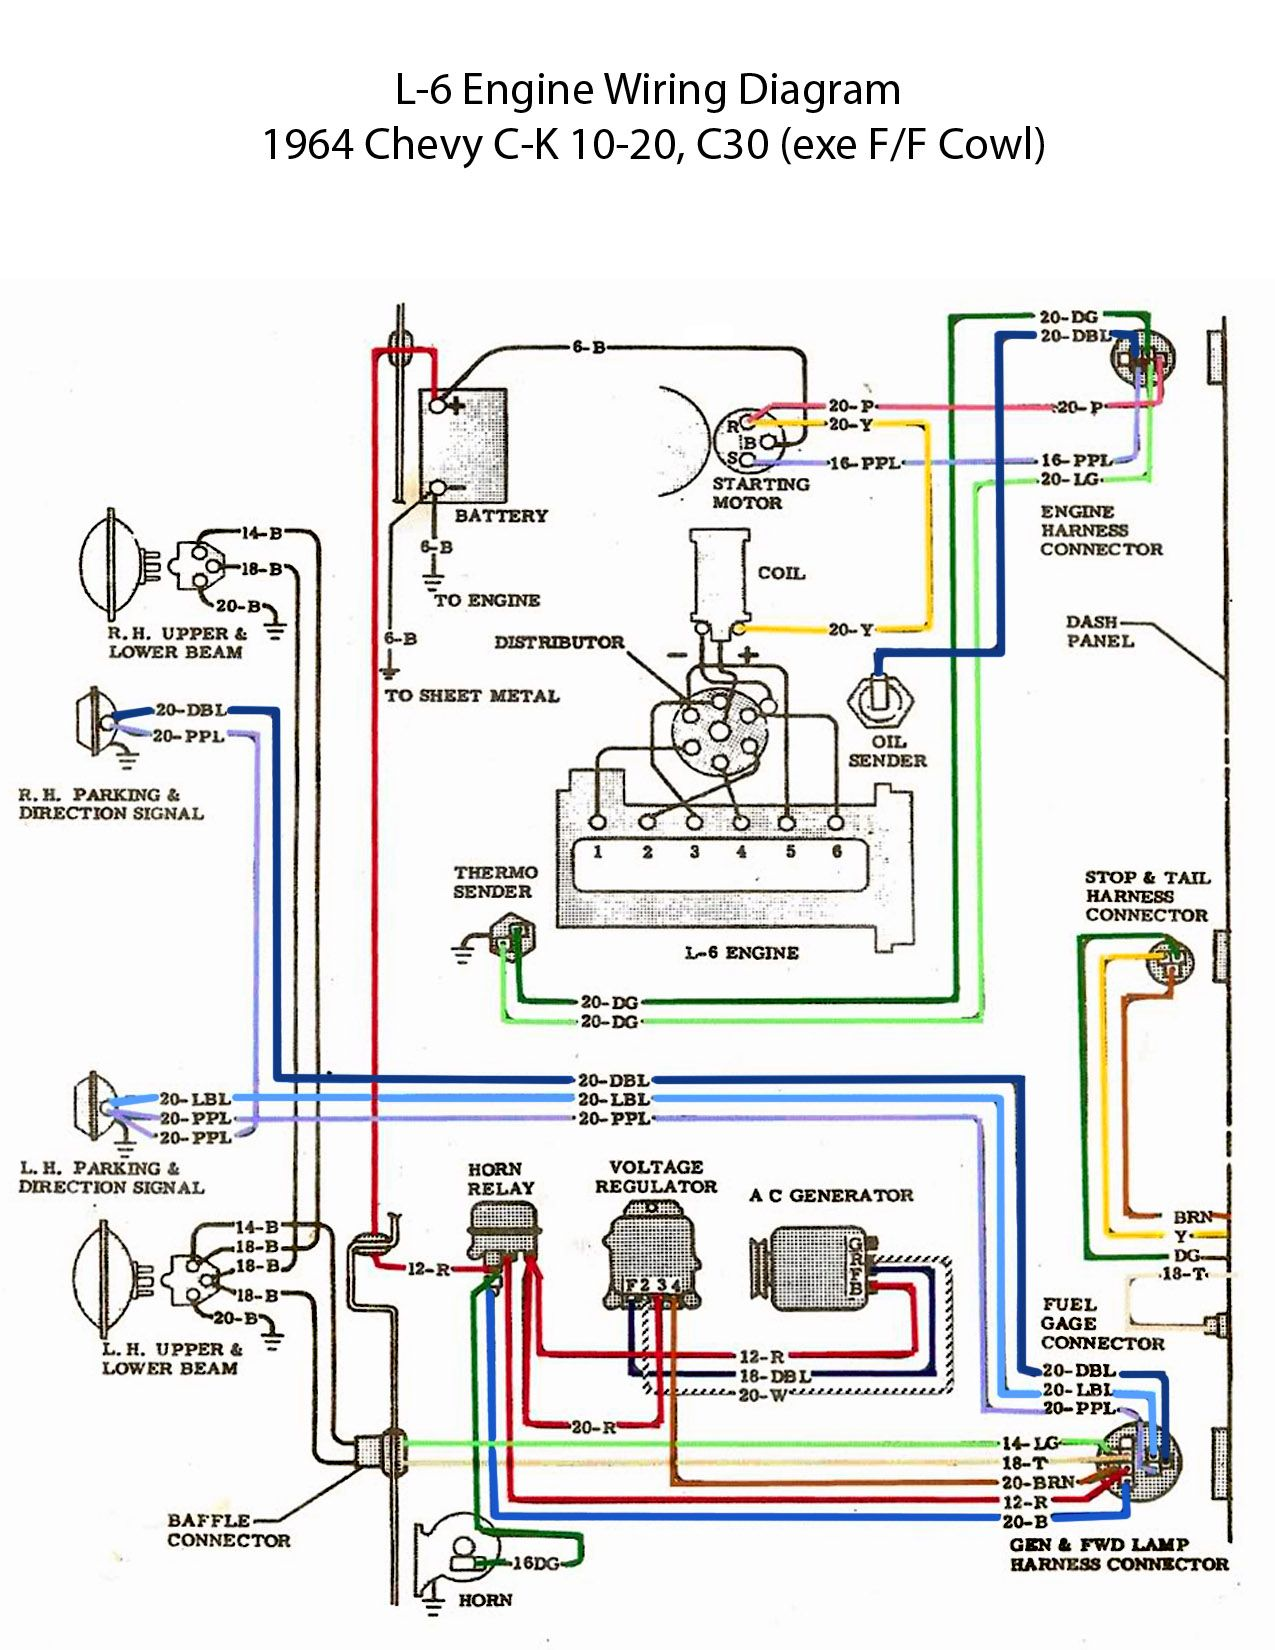 Pleasant Electric L 6 Engine Wiring Diagram 60S Chevy C10 Wiring Wiring 101 Cranwise Assnl